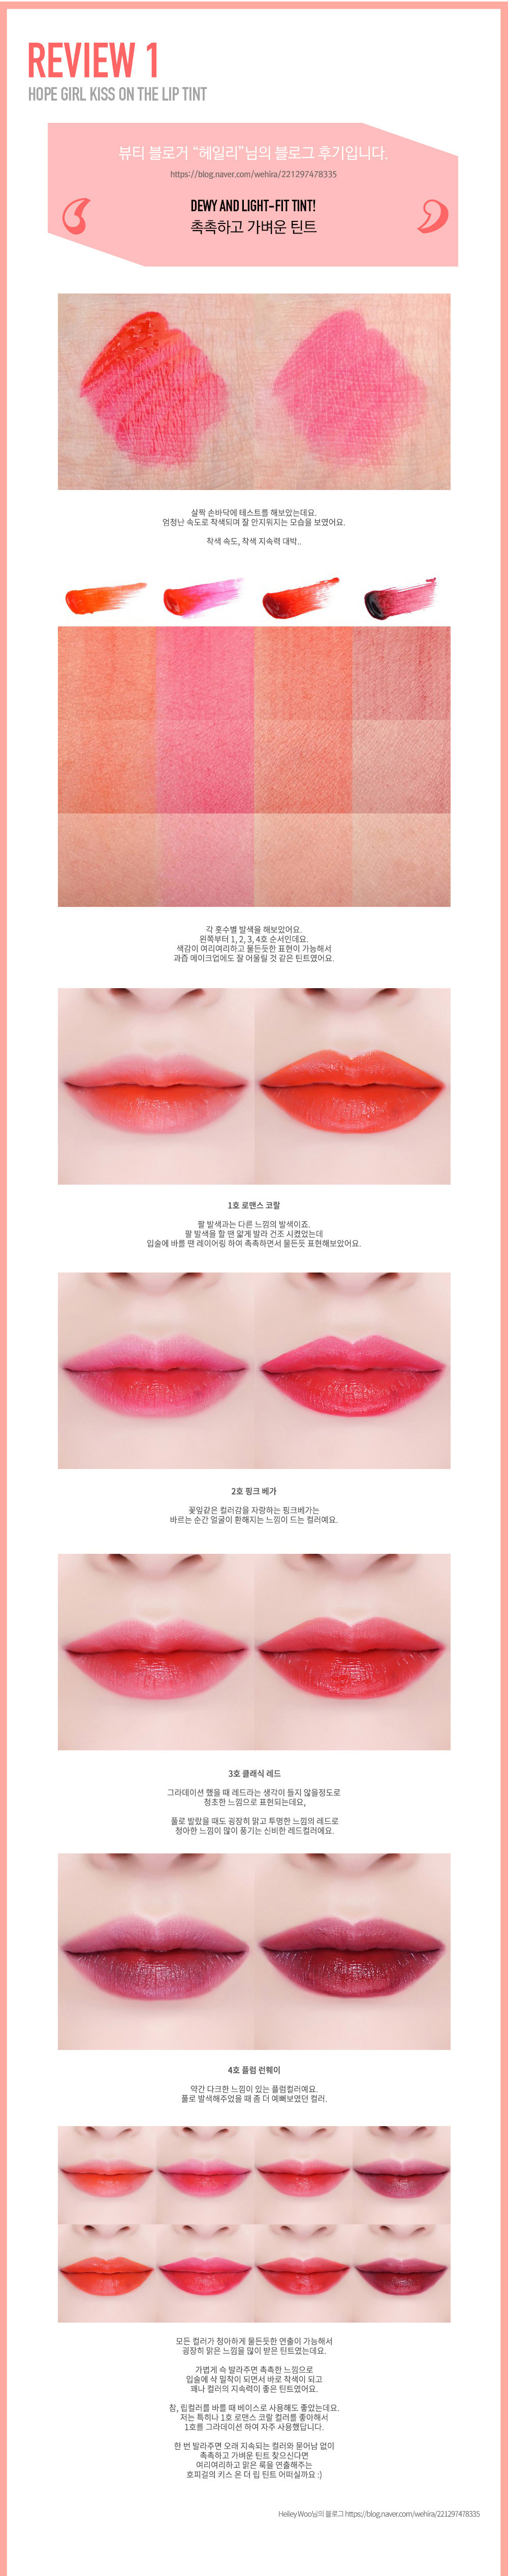 hope-girl-kiss-on-the-kip-tint-korean-cosmetics2.jpg